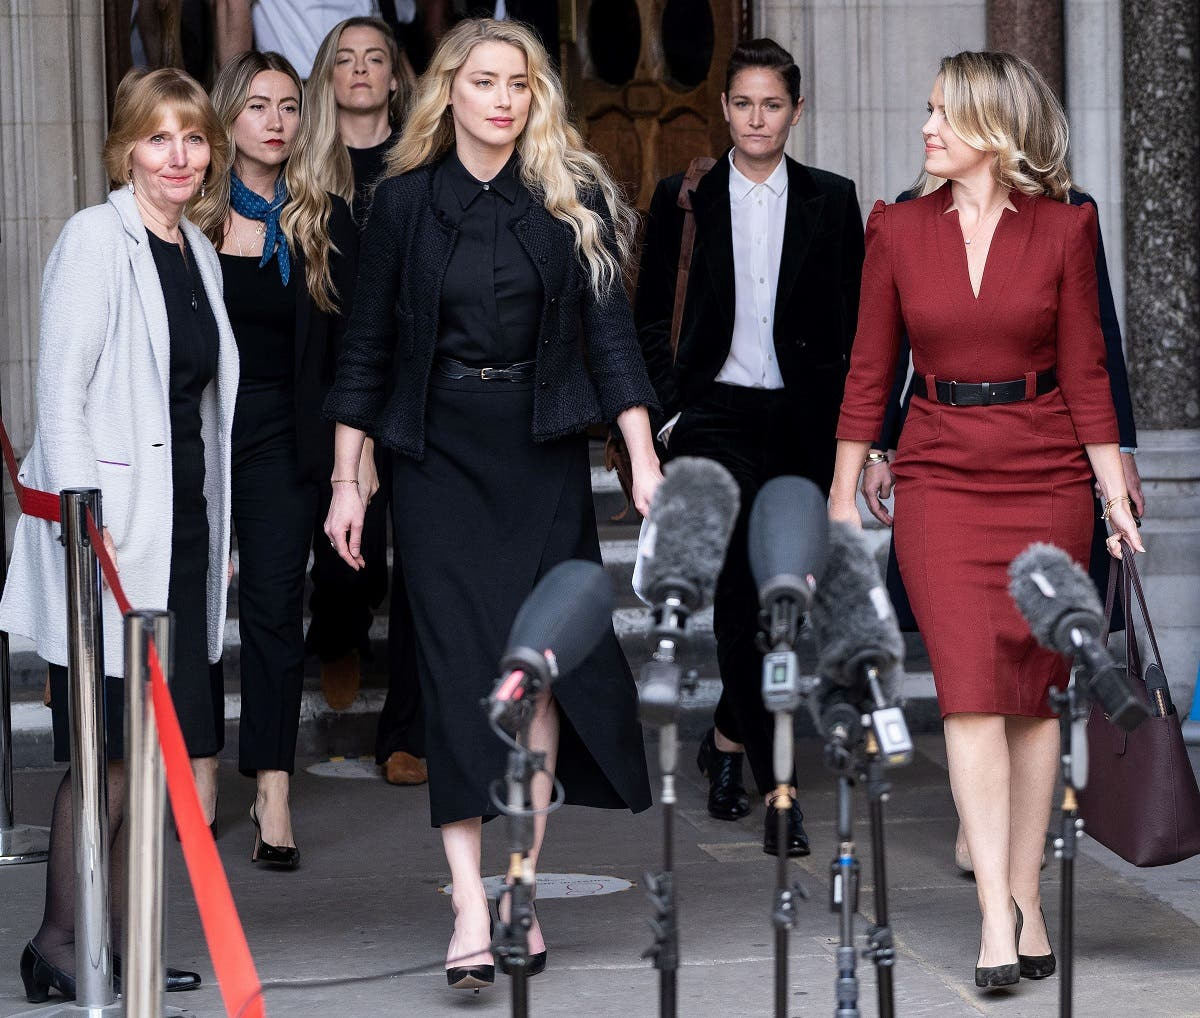 In this file photo taken on July 28, 2020 US actress Amber Heard (C) prepares to make a statement to members of the media outside the High Court in London, on July 28, 2020. (Niklas Halle'n/AFP)